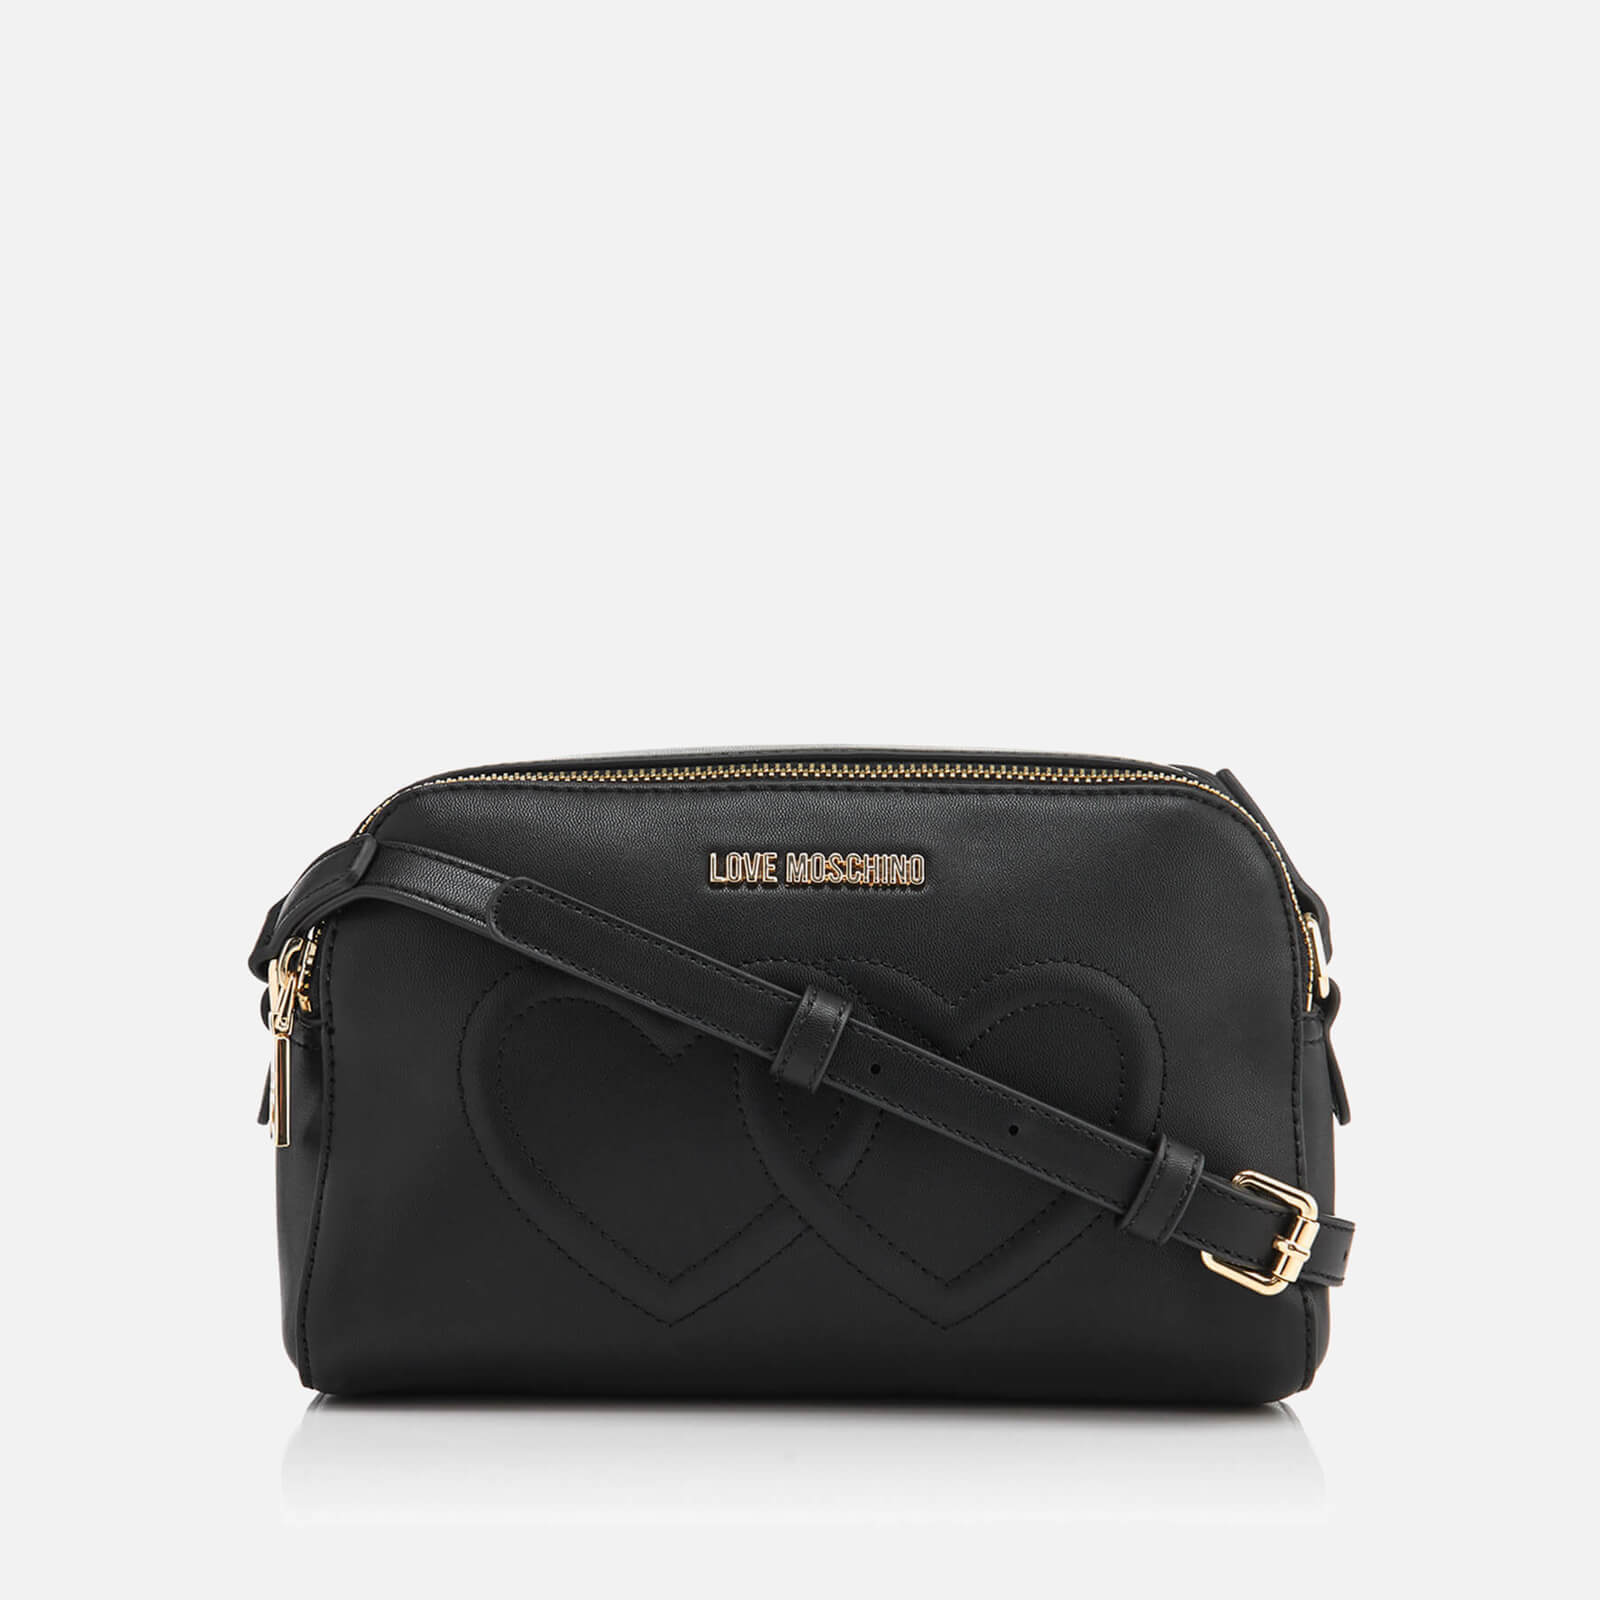 a6aacf88934a Love Moschino Women s Love Heart Embossed Mini Cross Body Bag - Black -  Free UK Delivery over £50